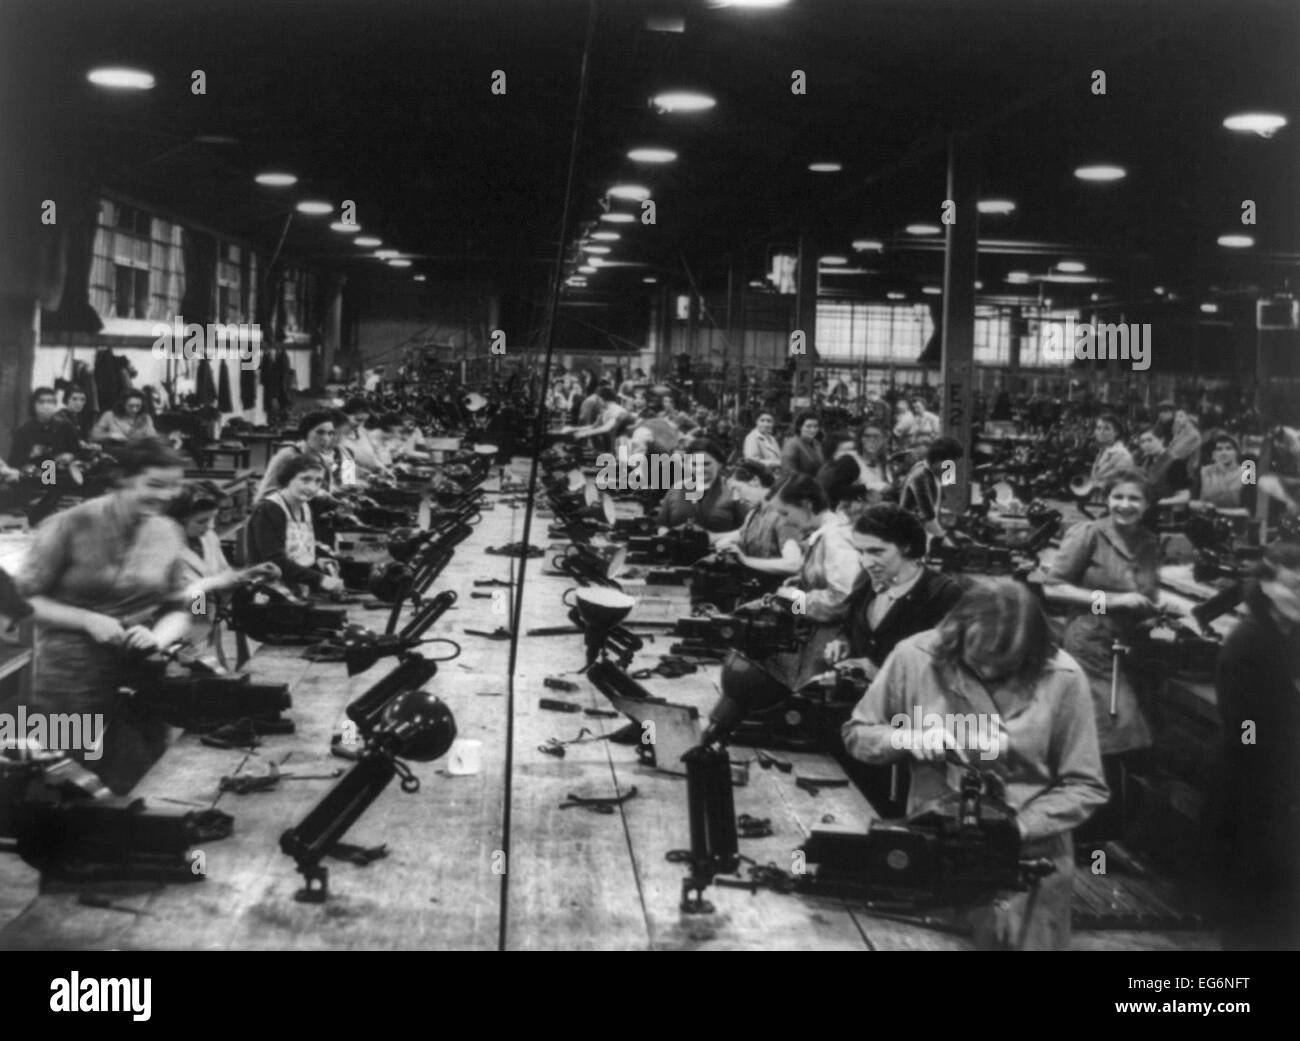 Scores of British women perform light bench work at a small arms factory. Ca. 1939-45. World War 2. (BSLOC_2014 - Stock Image